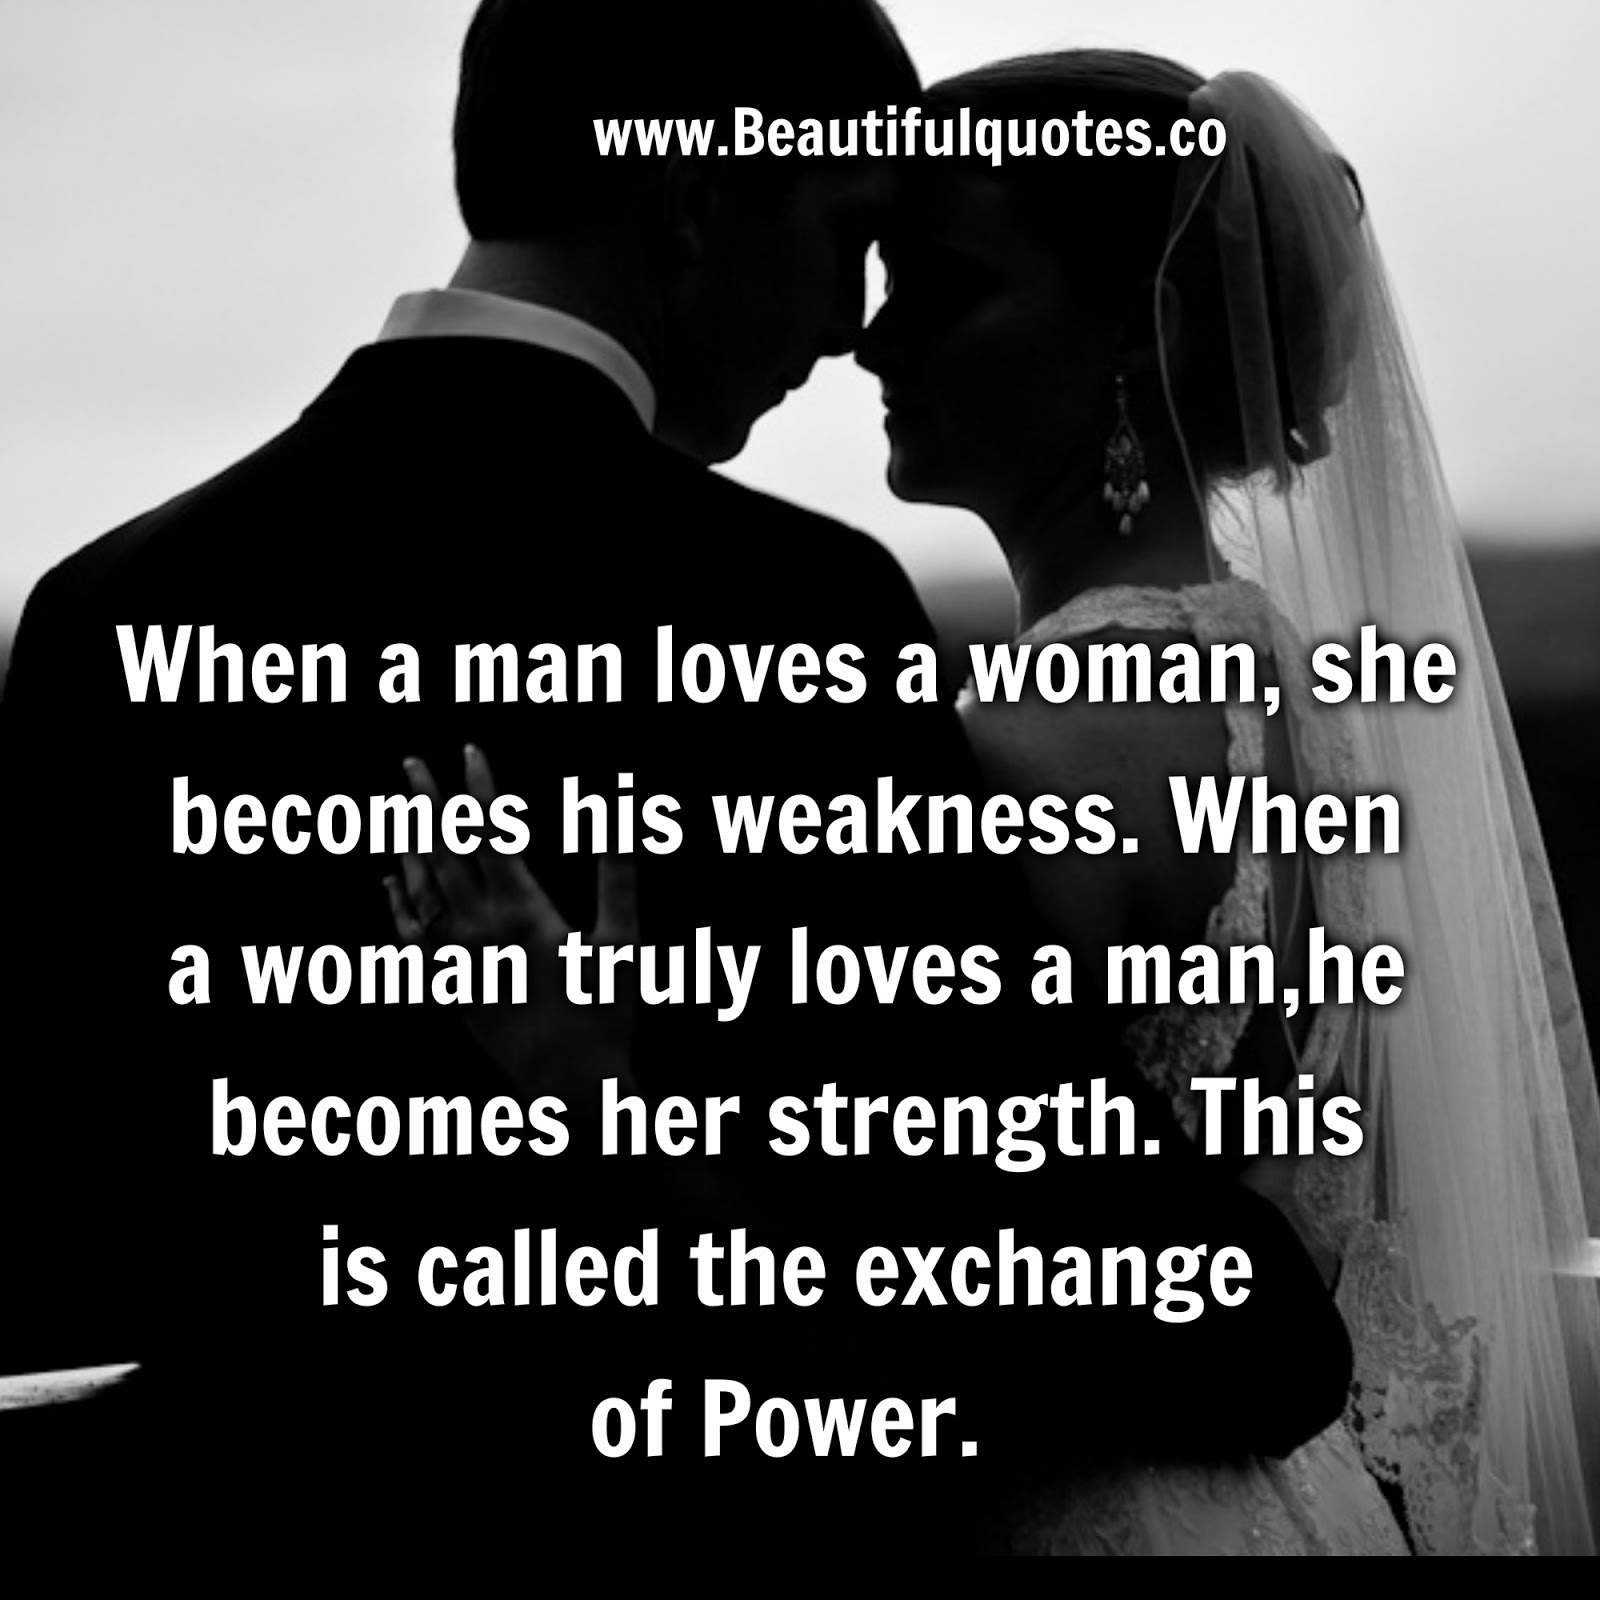 Quotes About How A Man Should Love A Woman: Beautiful Quotes: When A Man Loves A Woman